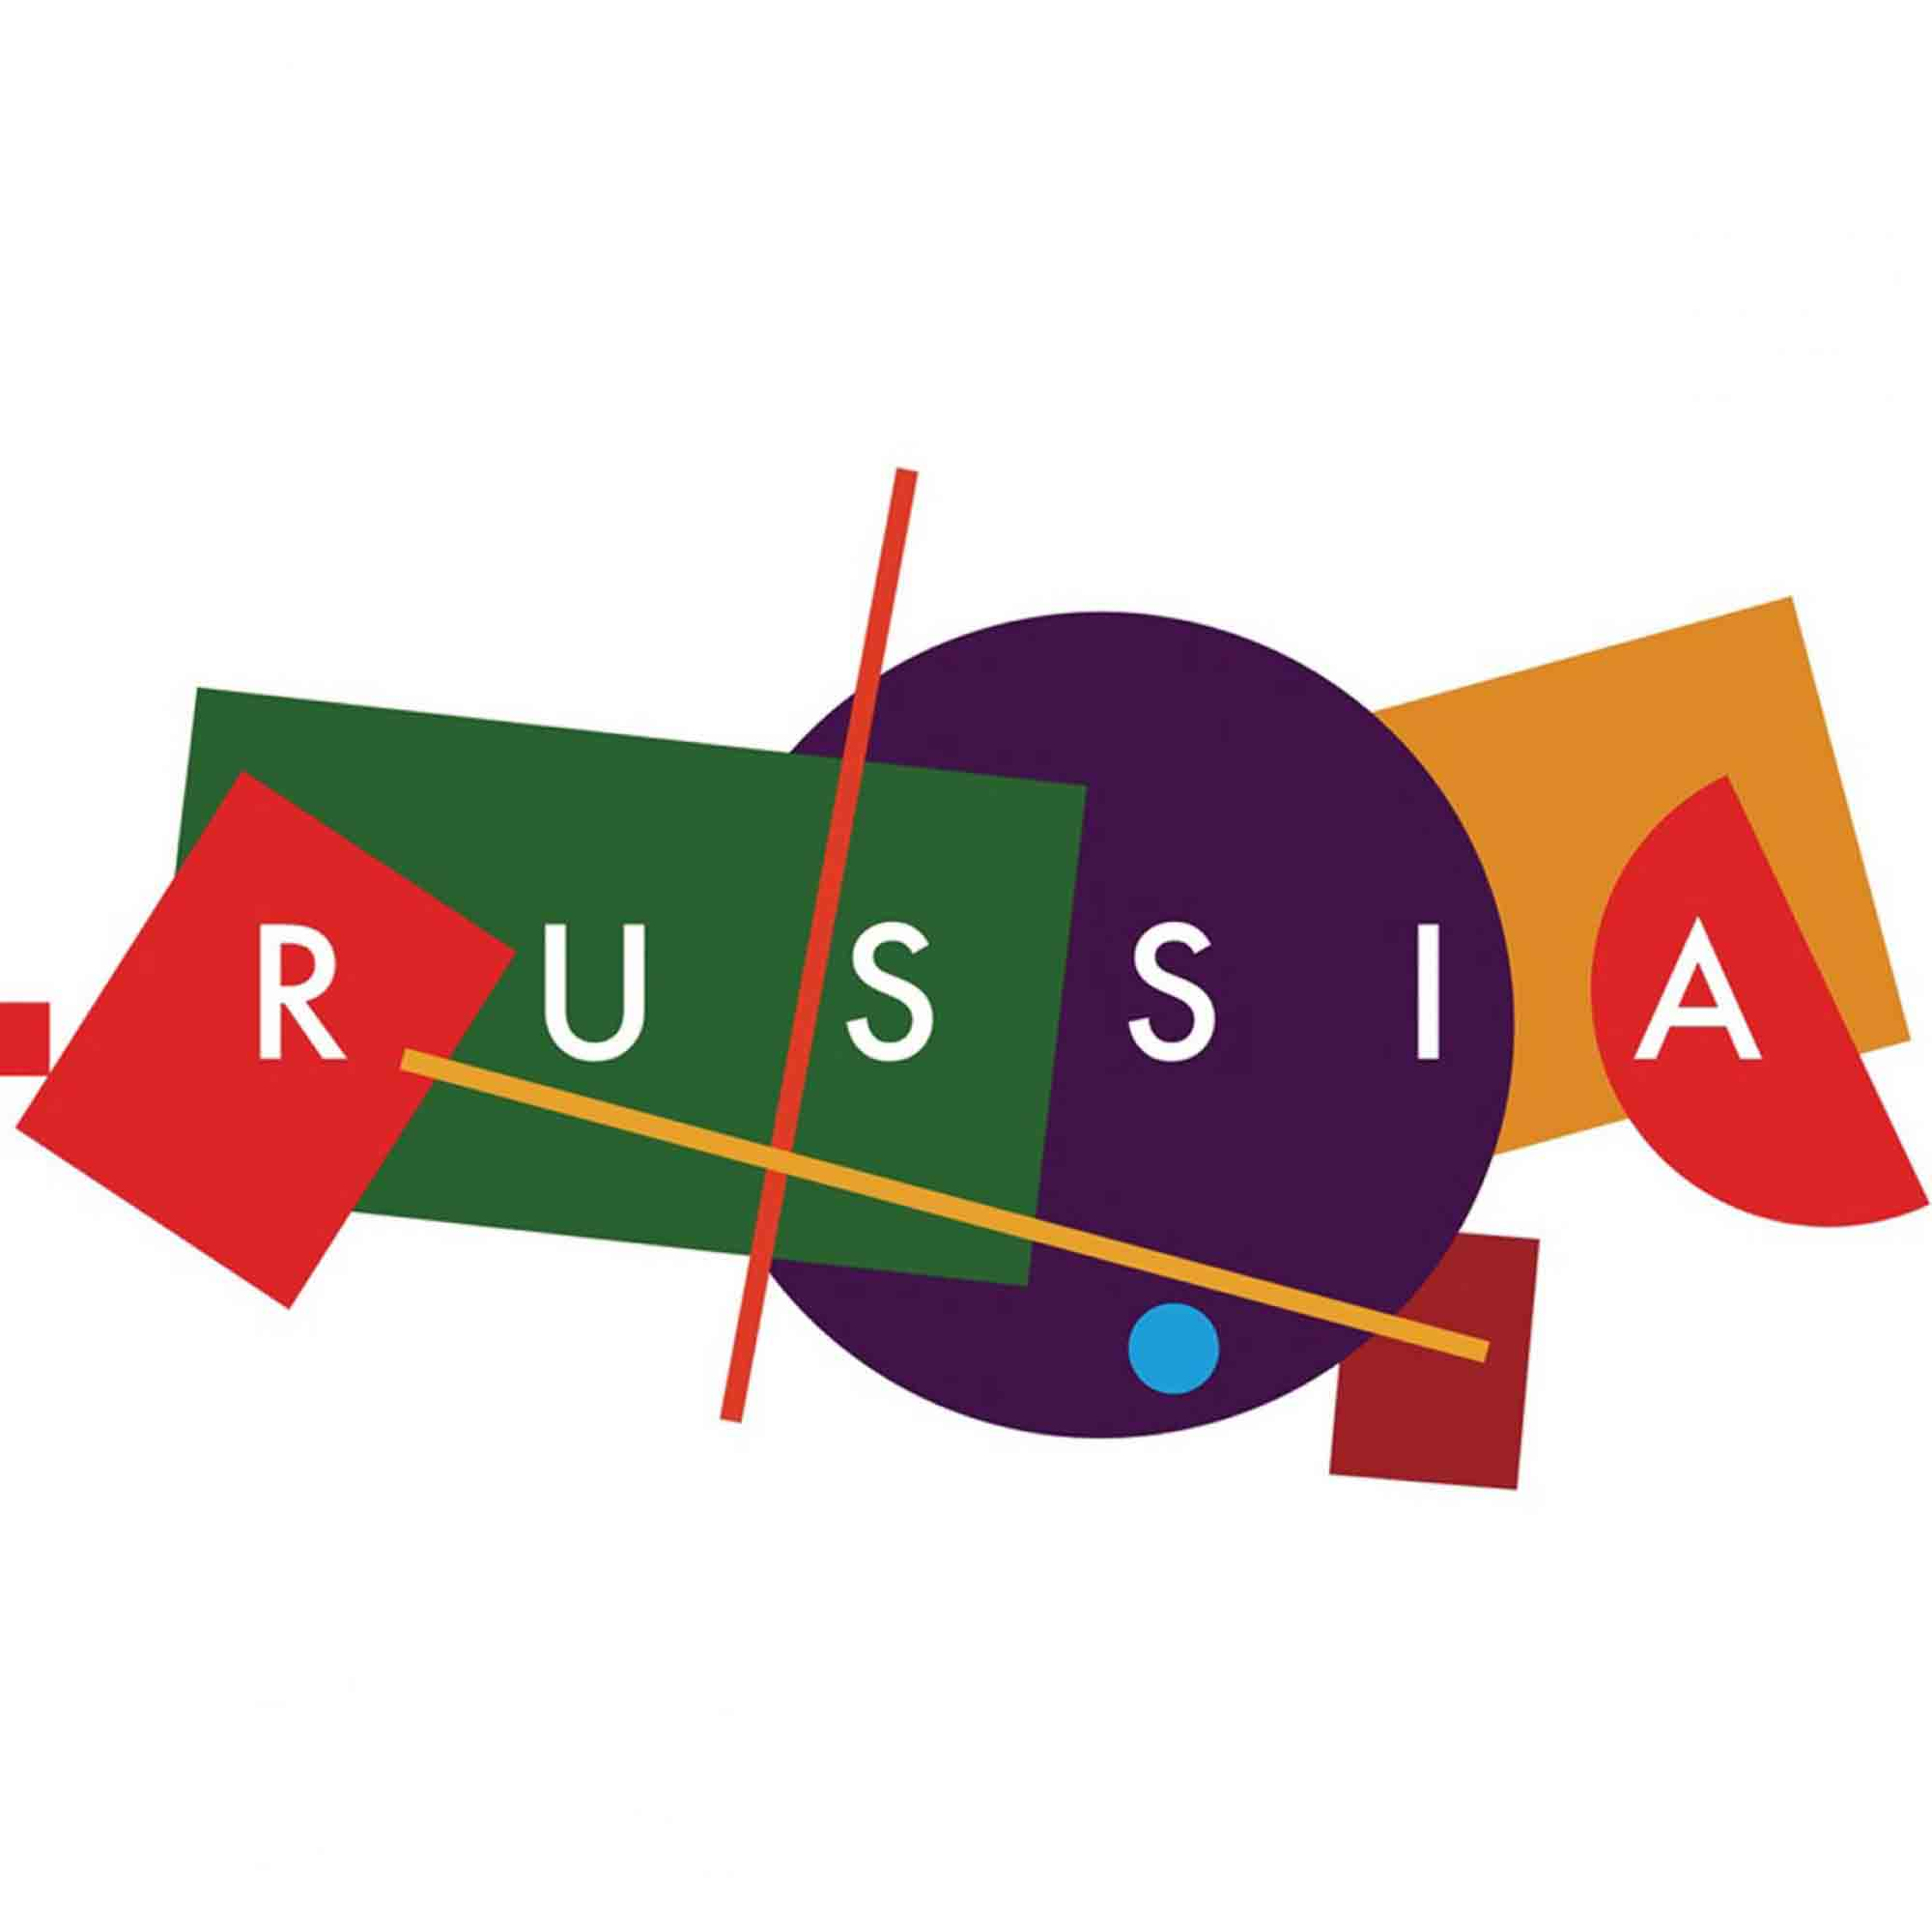 Mapping out a new identity articles logolounge designers from four different russian design agenciessupremtica plenum artonika and artlebedevhave created a new identity for the russian tourism board gumiabroncs Images